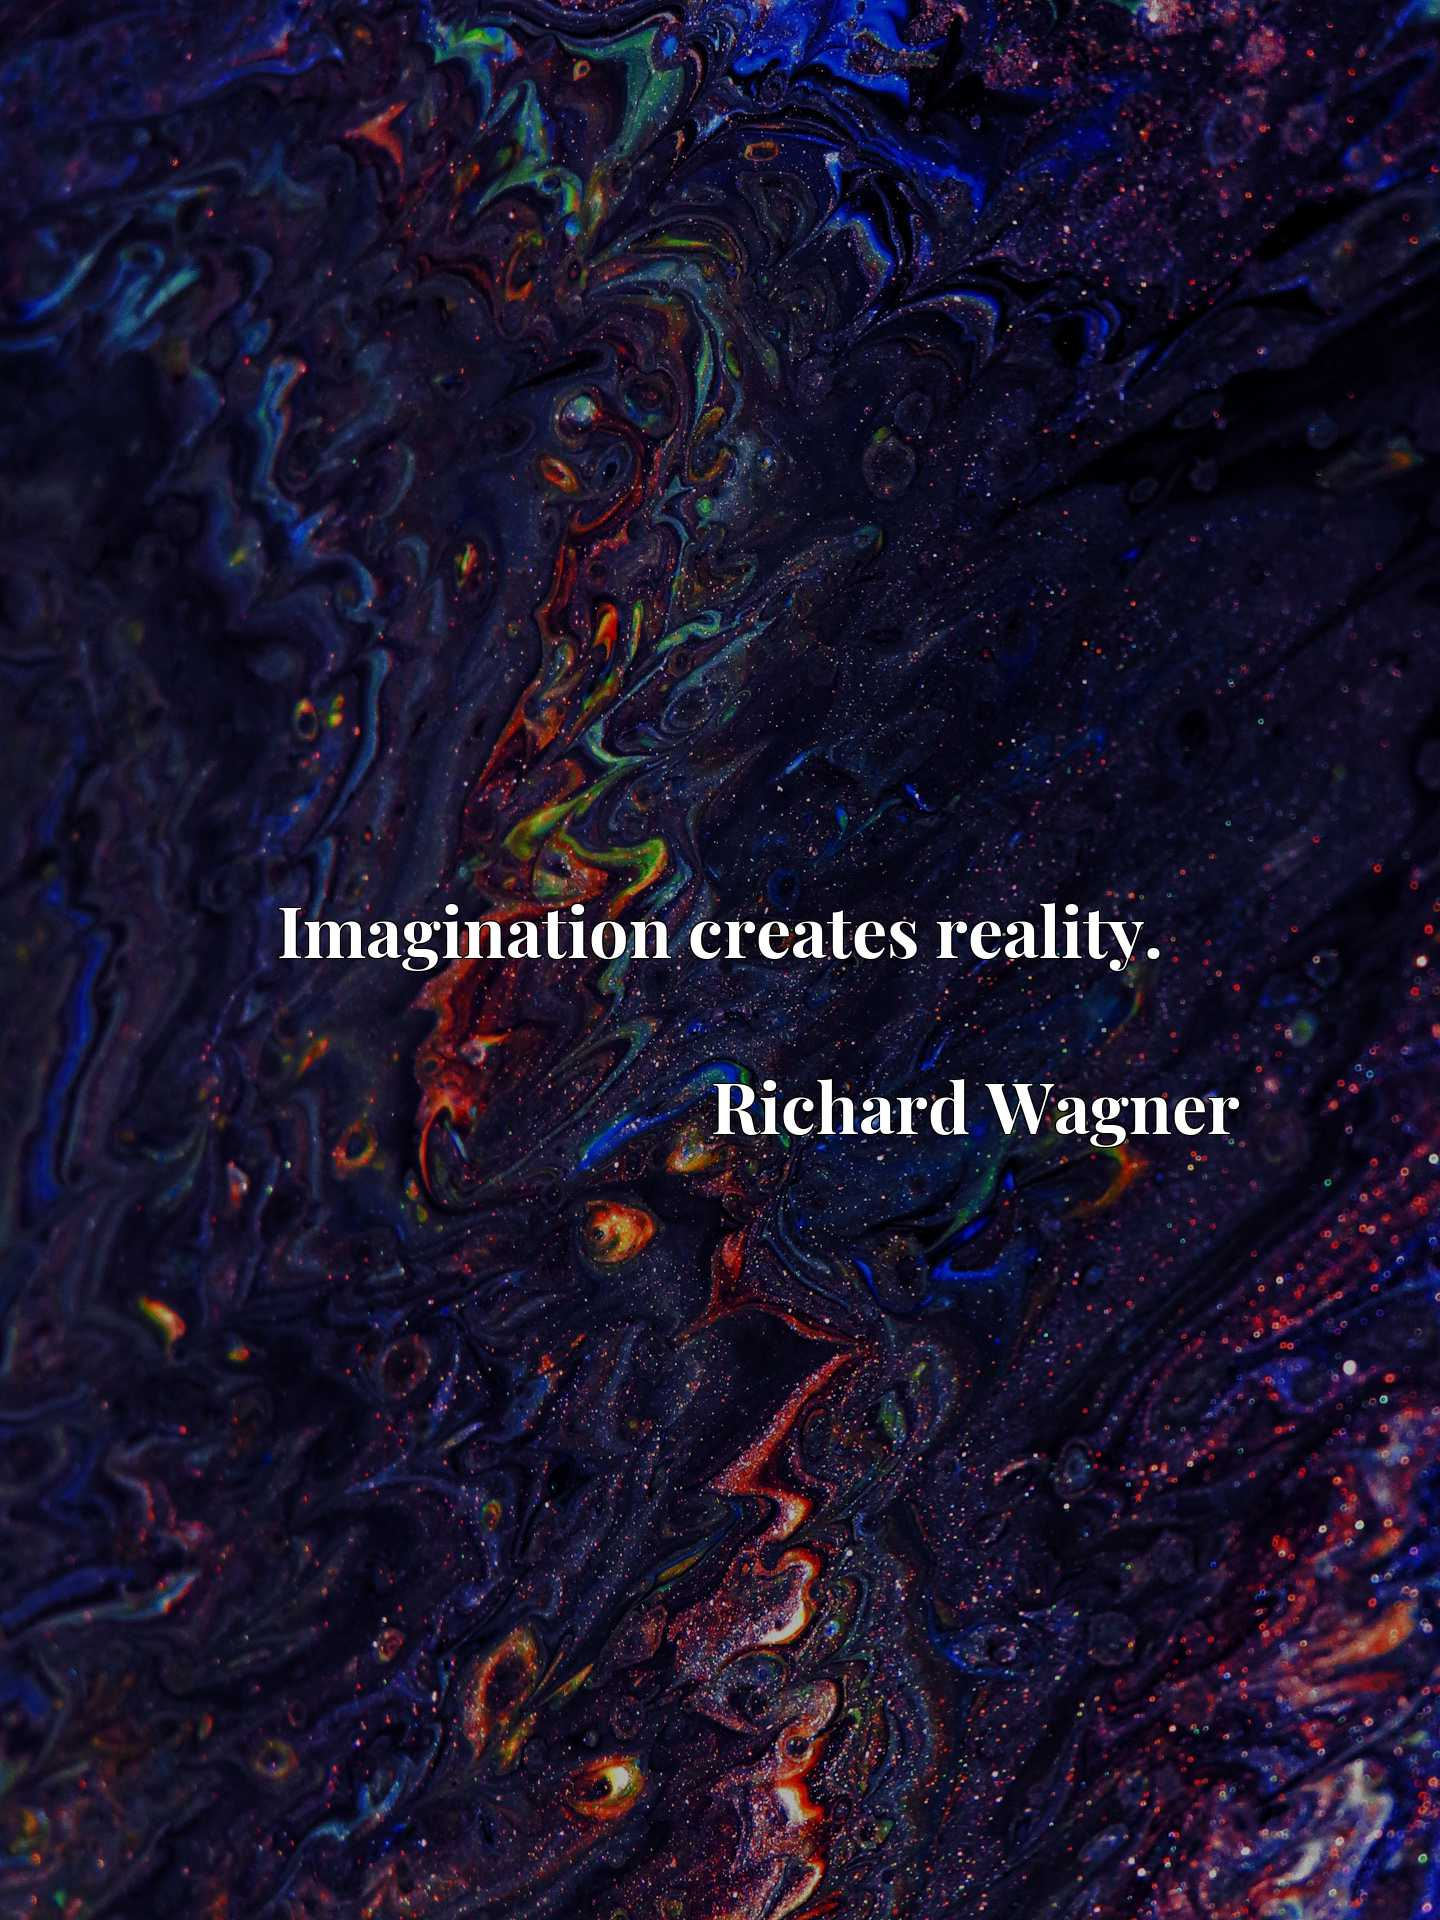 Quote Picture :Imagination creates reality.